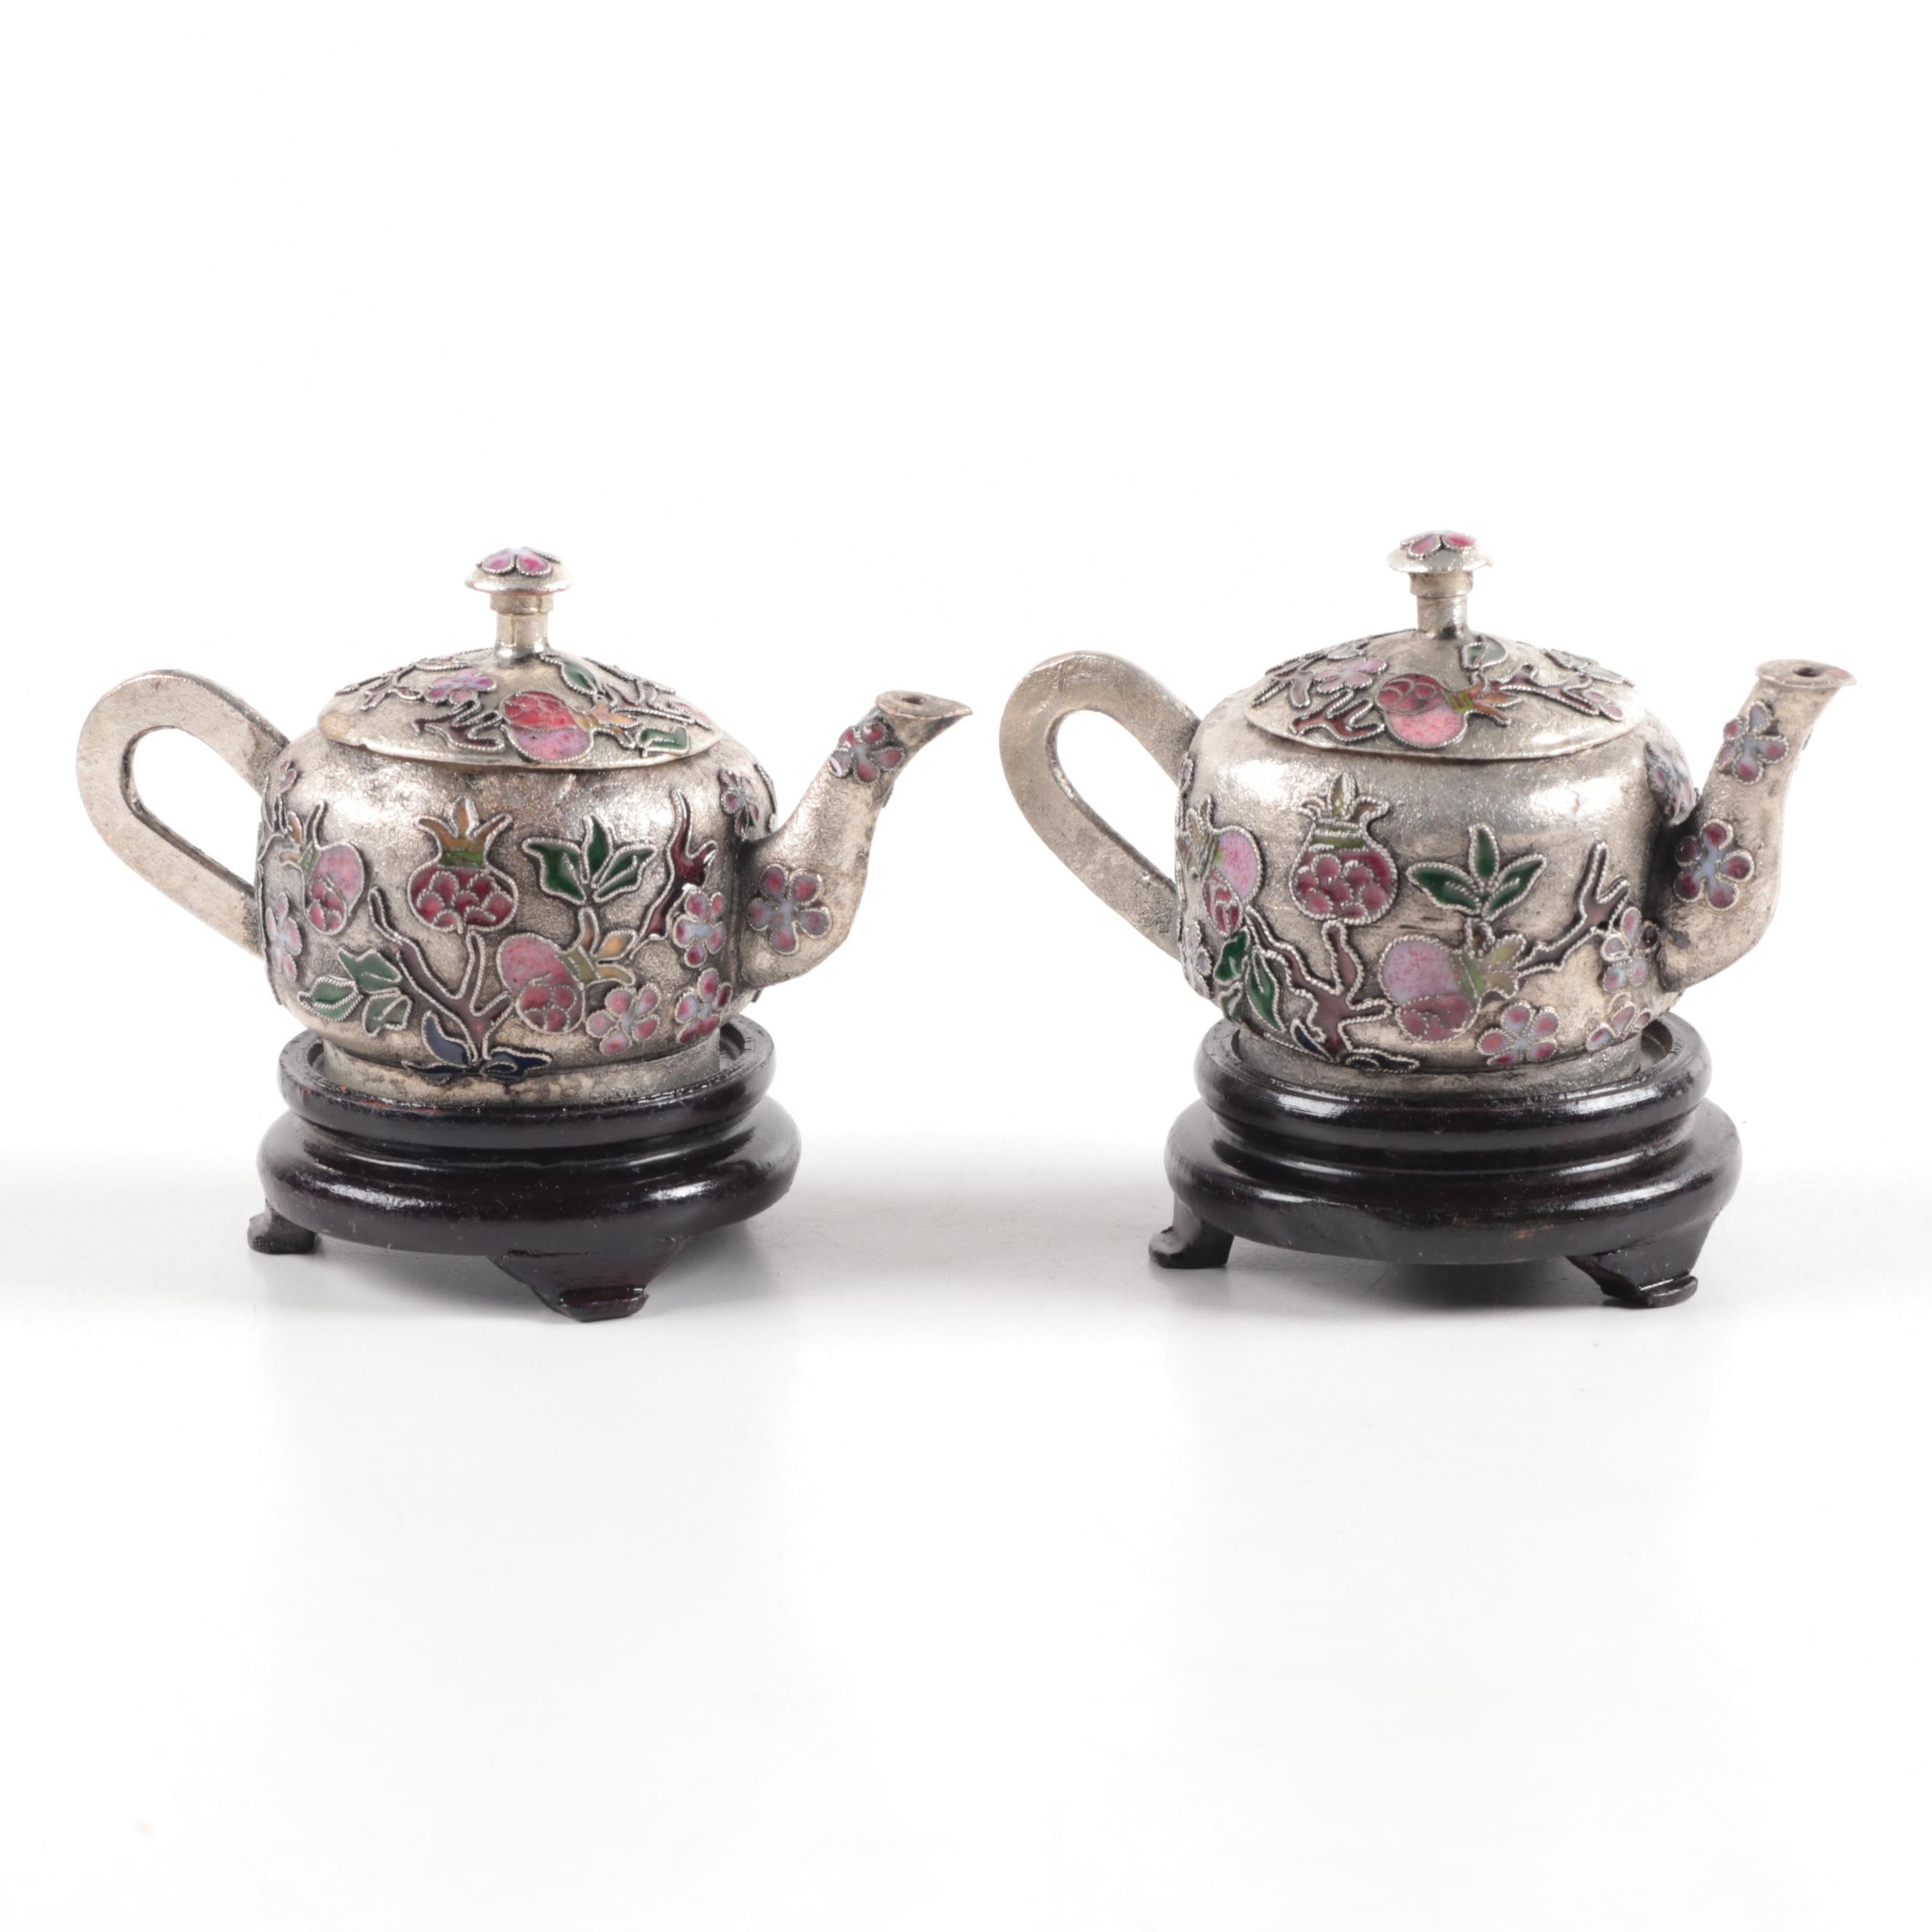 Chinese Miniature Cloisonné Teapot with Wooden Stand